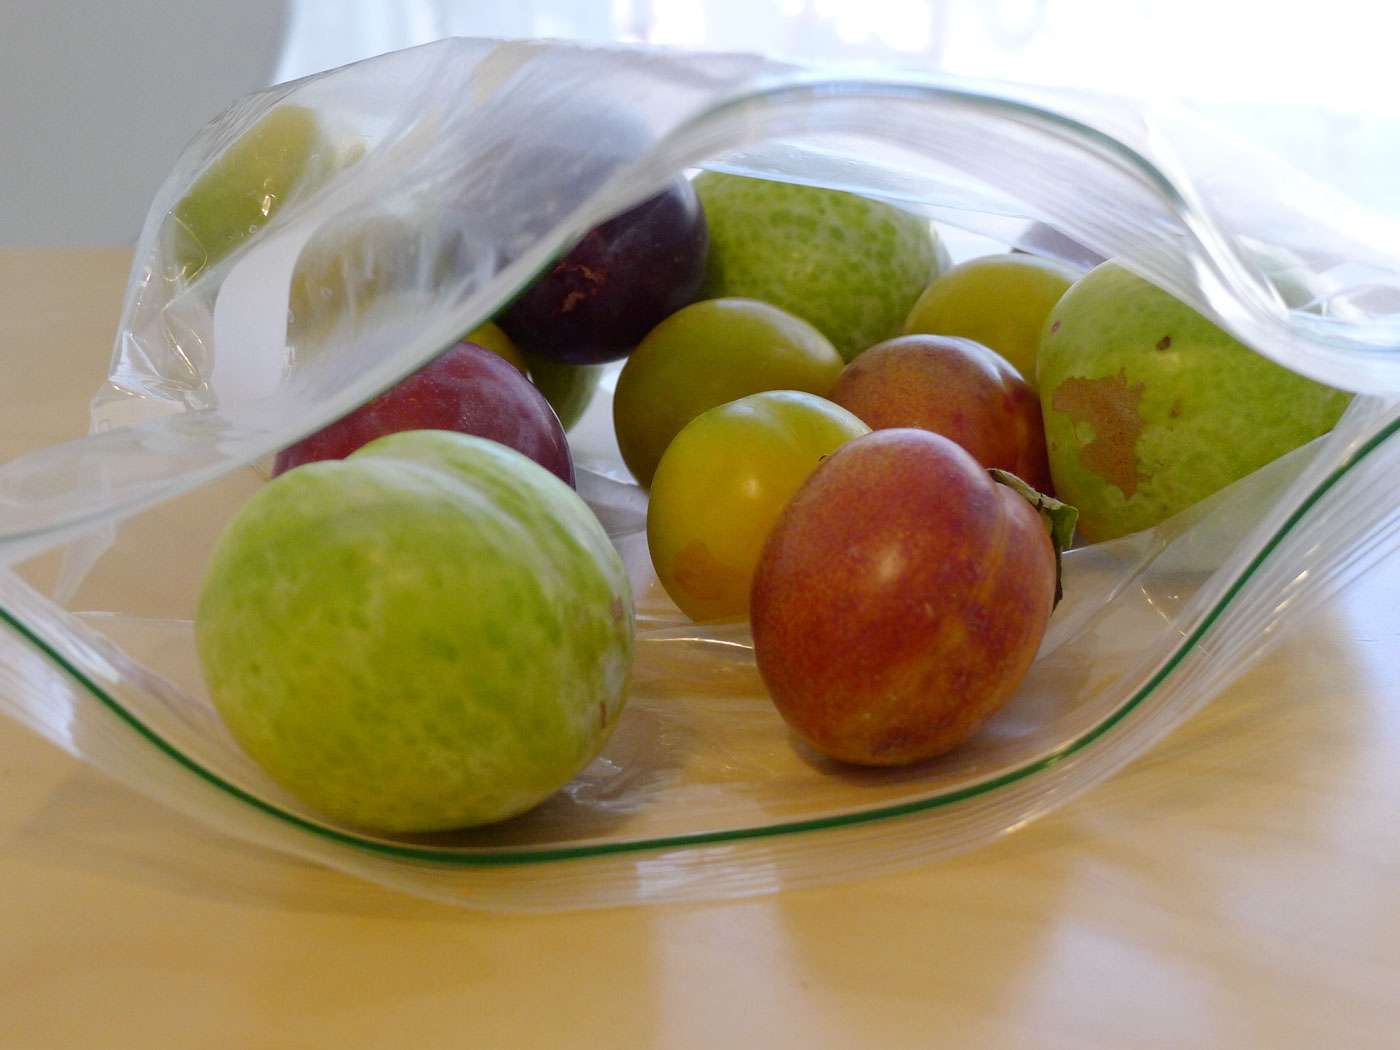 Bag of Plums and Pluots